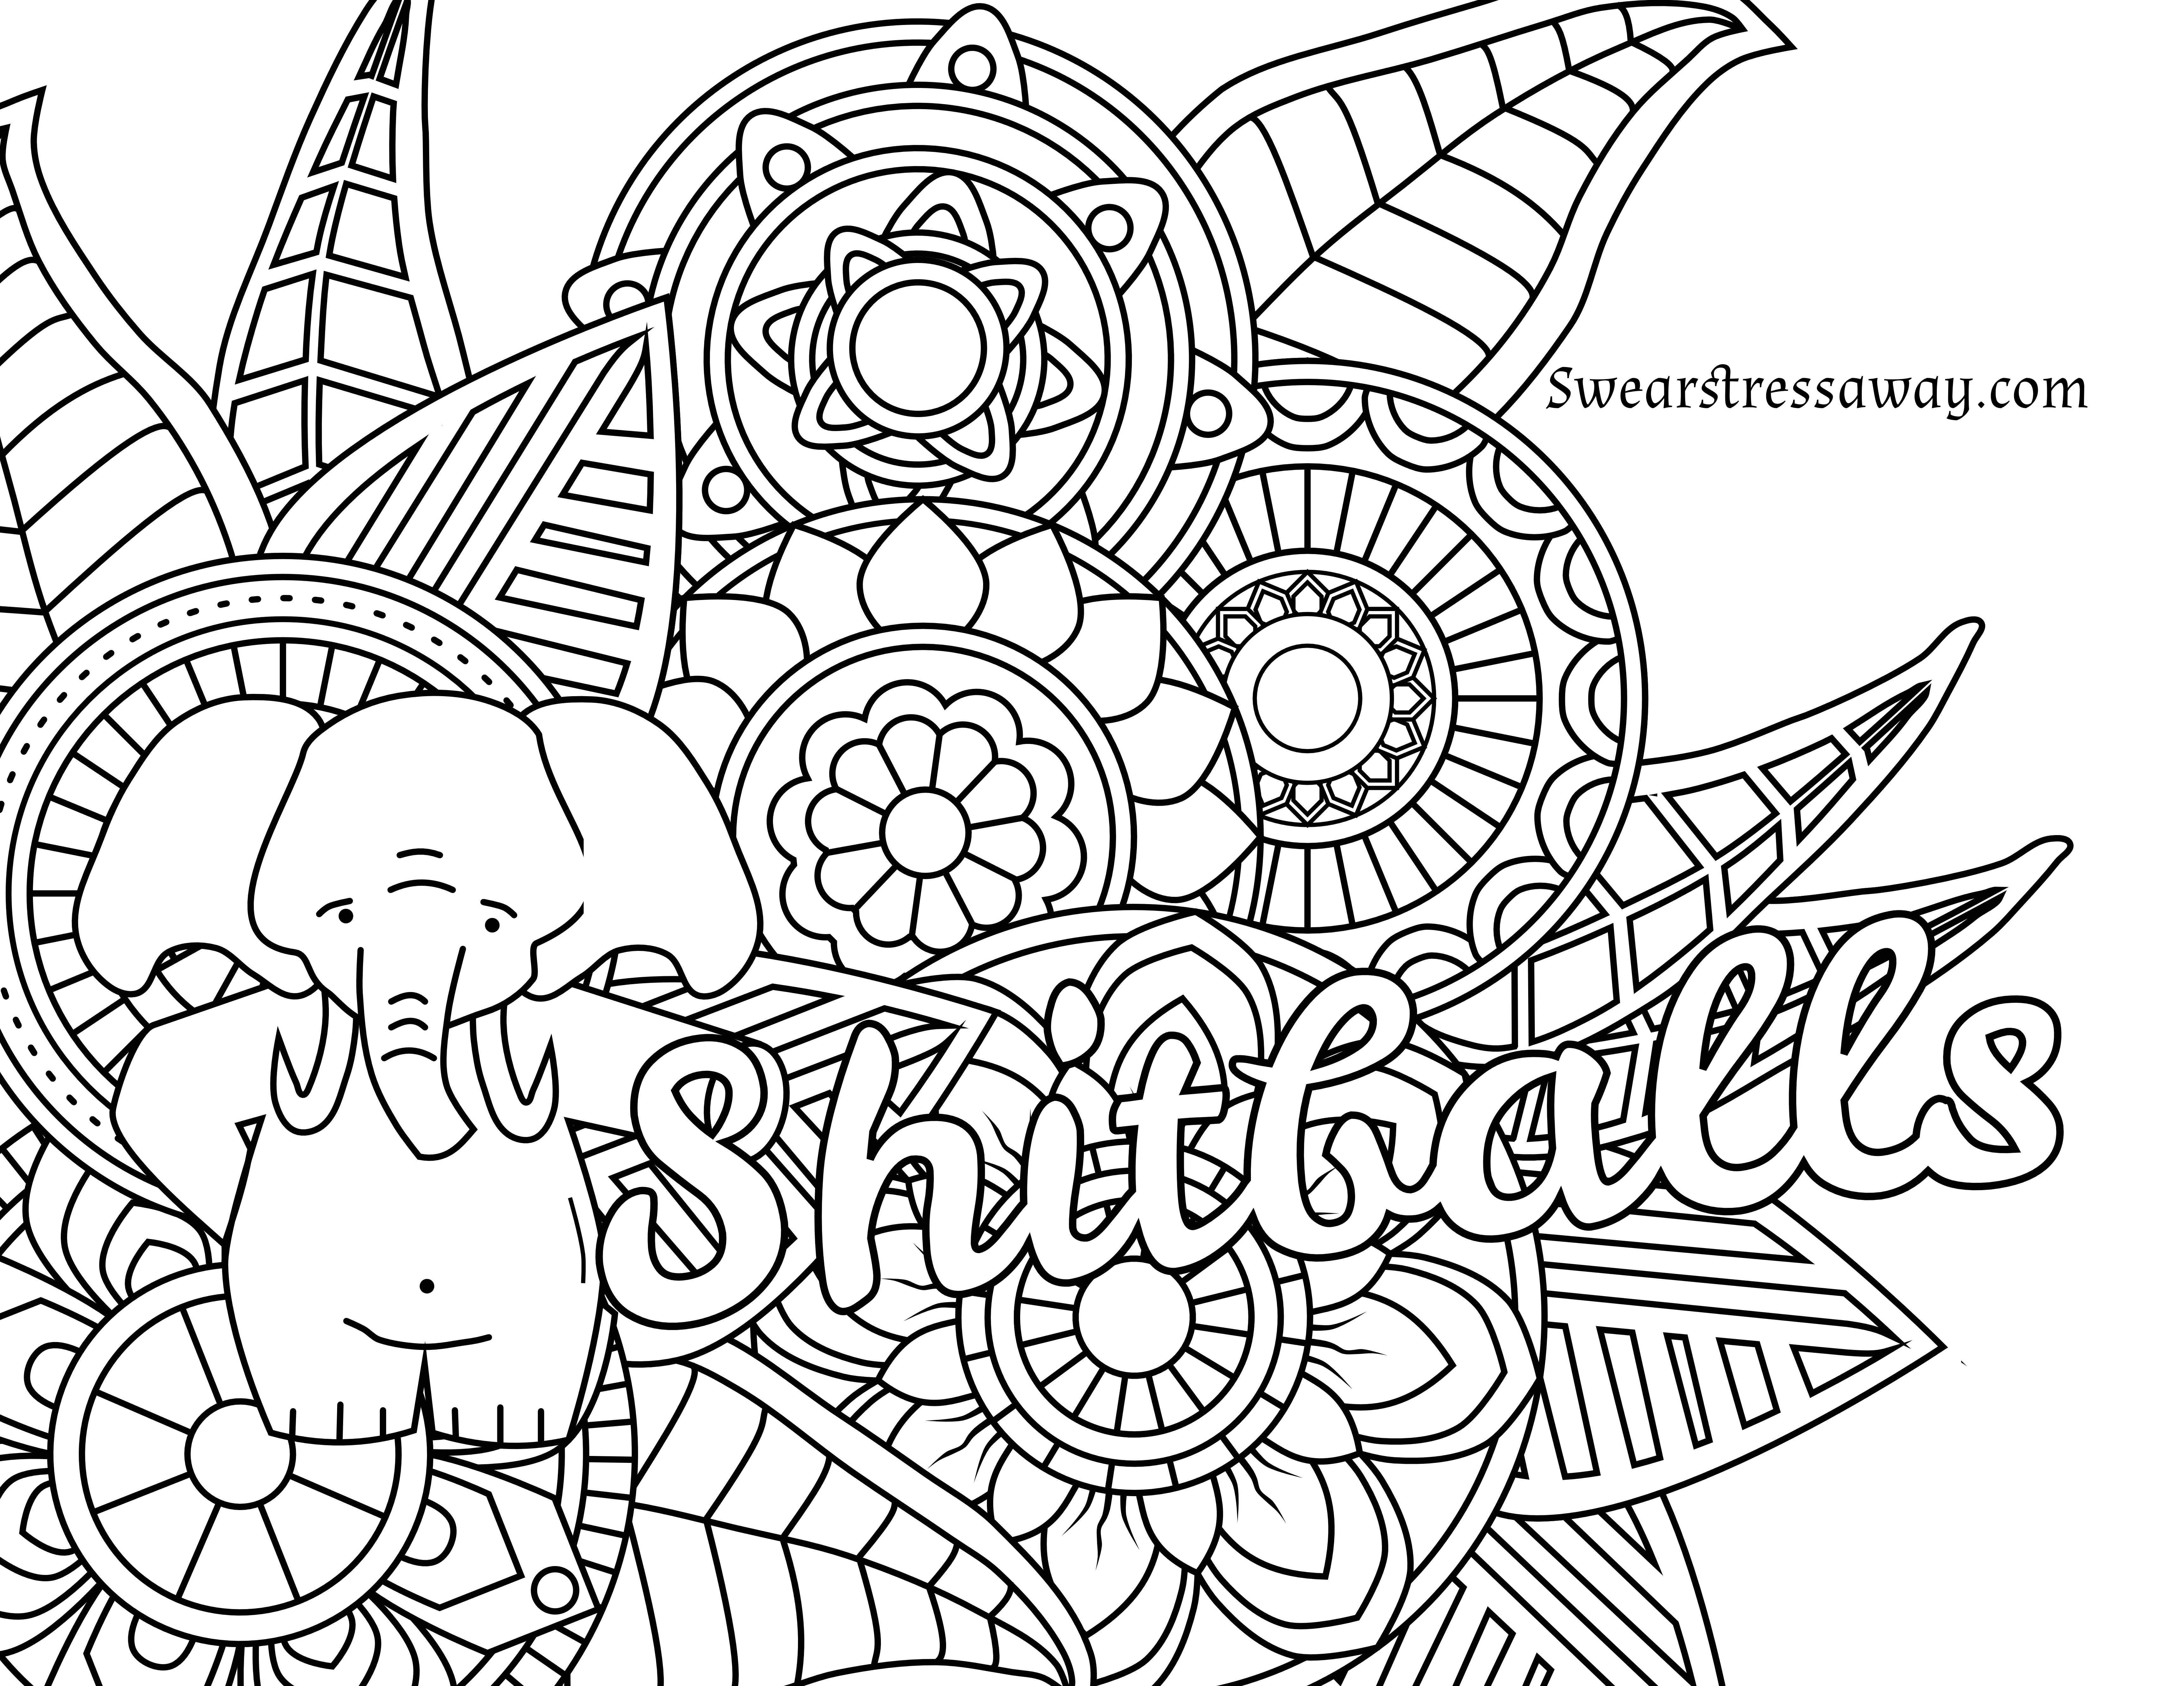 Coloring Pages : Free Printable Coloring Pages Adults Quotes For - Free Printable Coloring Pages